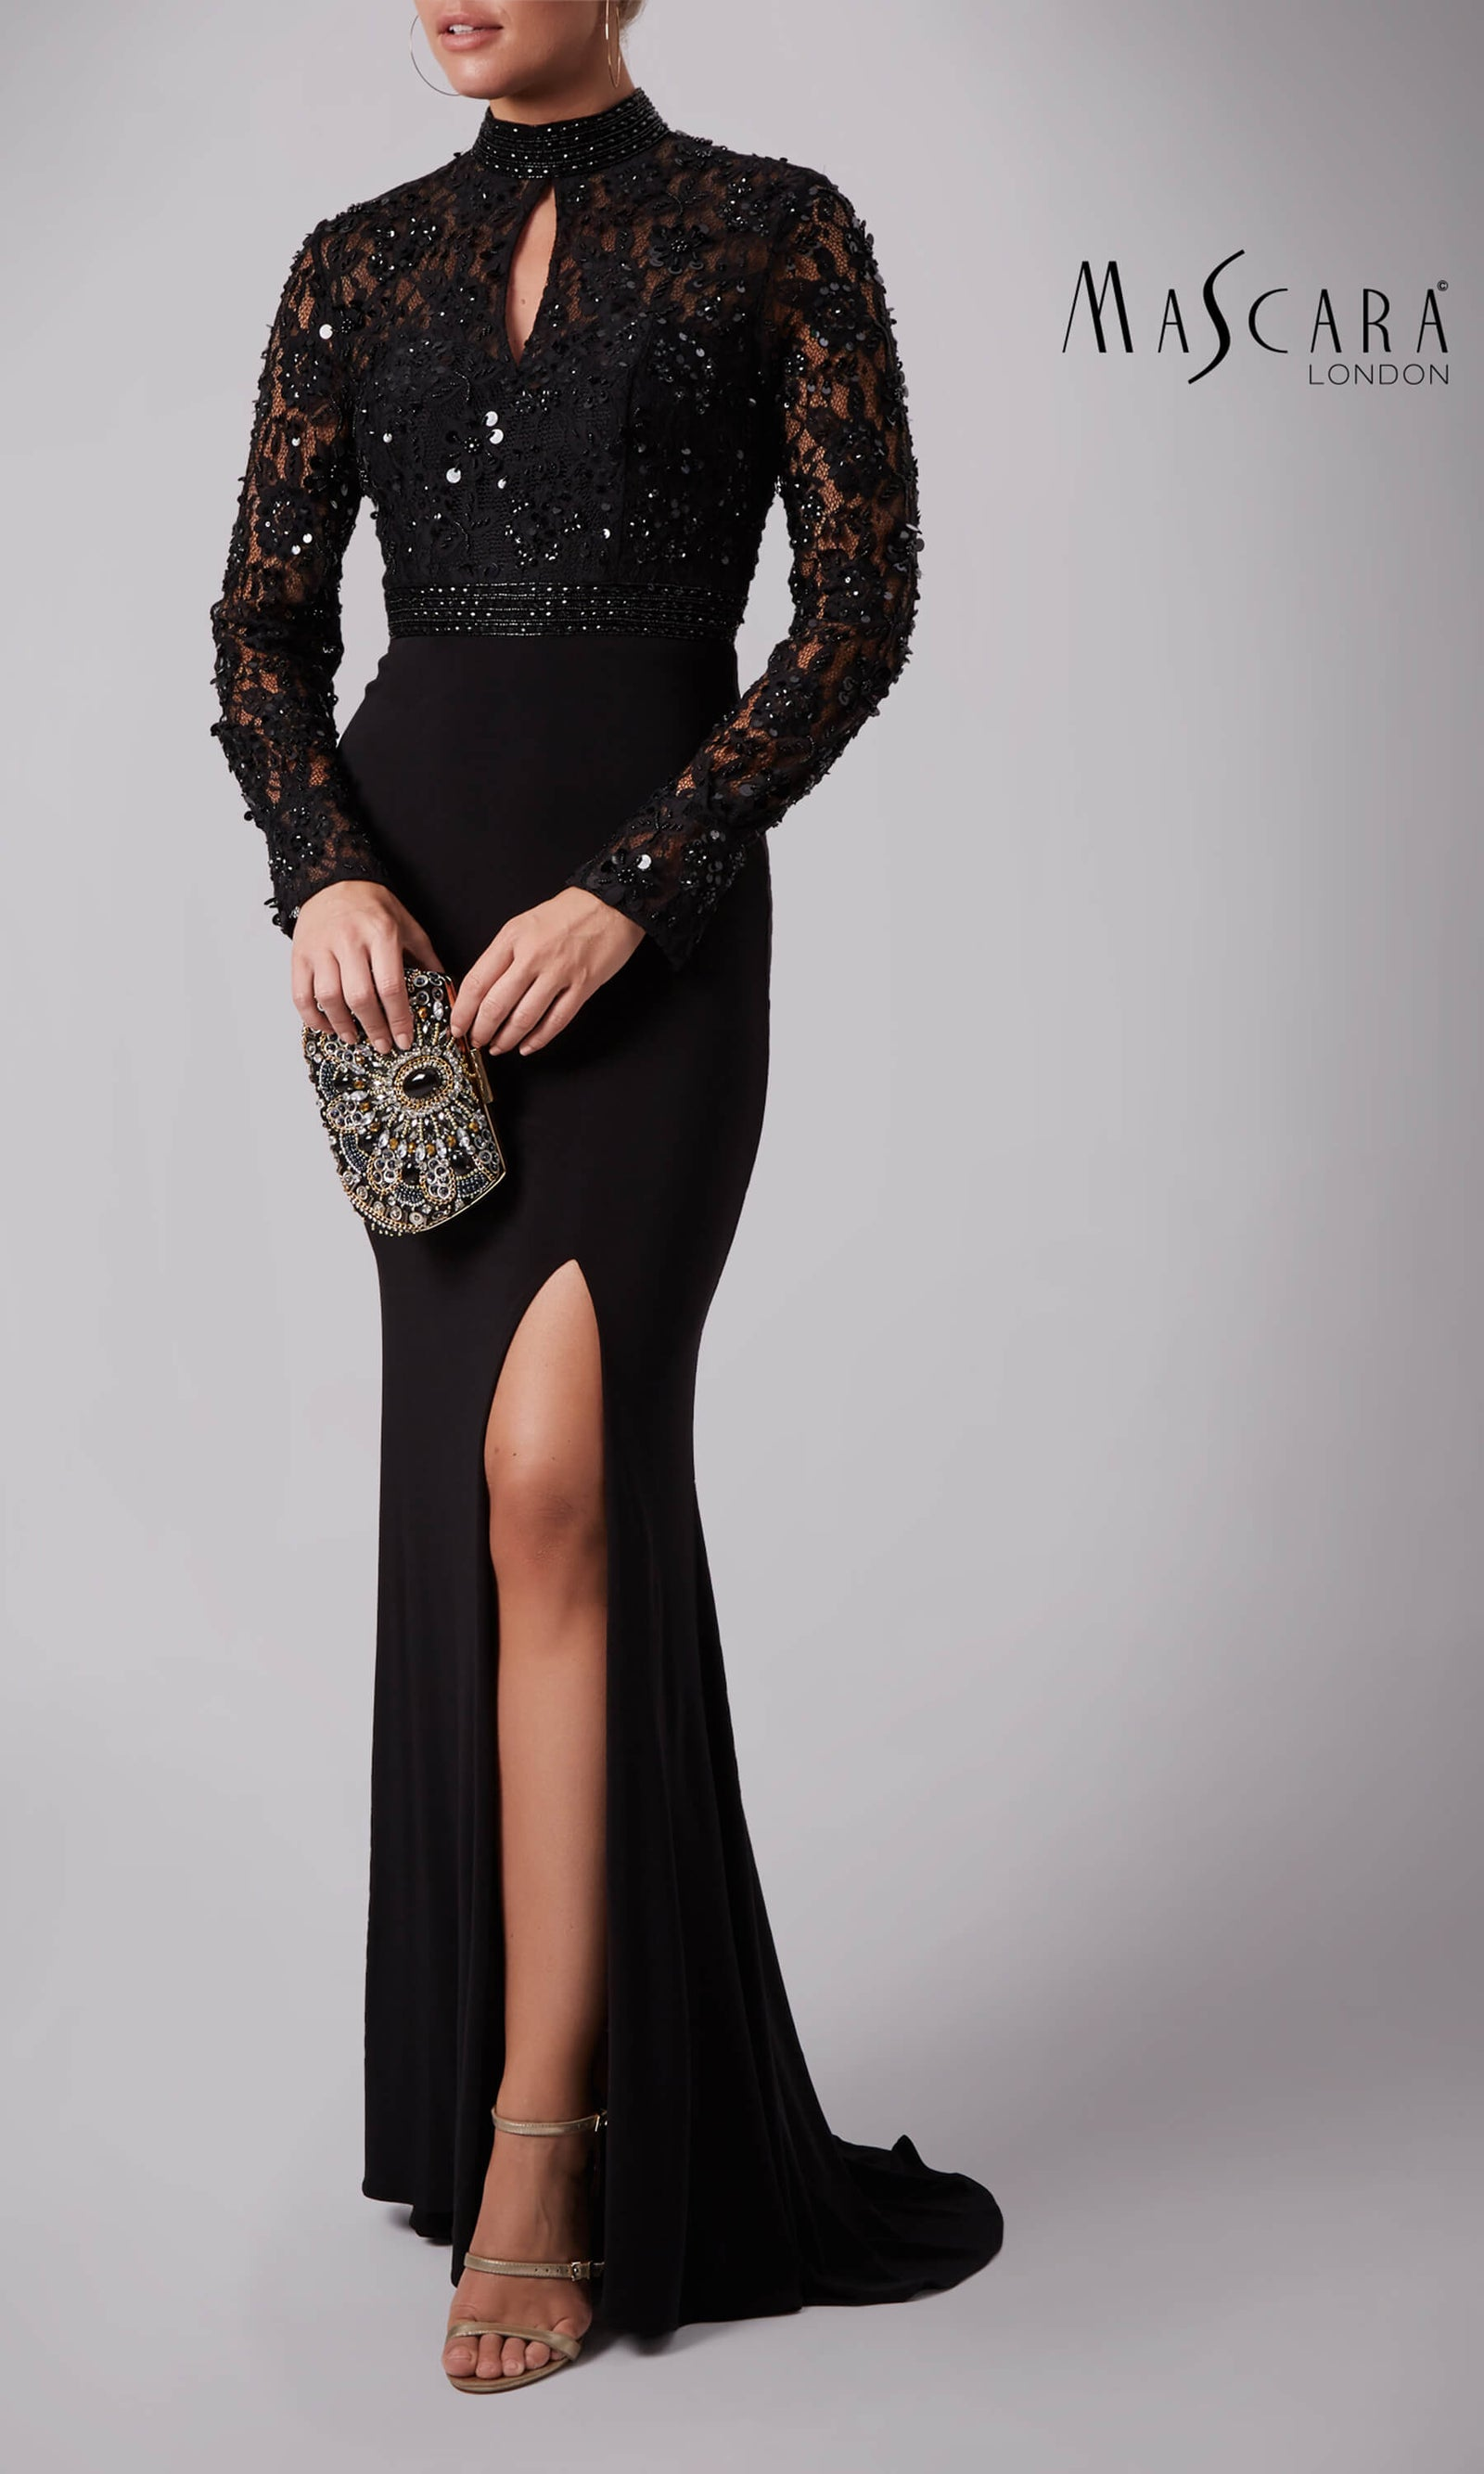 MC181371 Black Mascara Dress With Full Length Sleeves - Fab Frocks